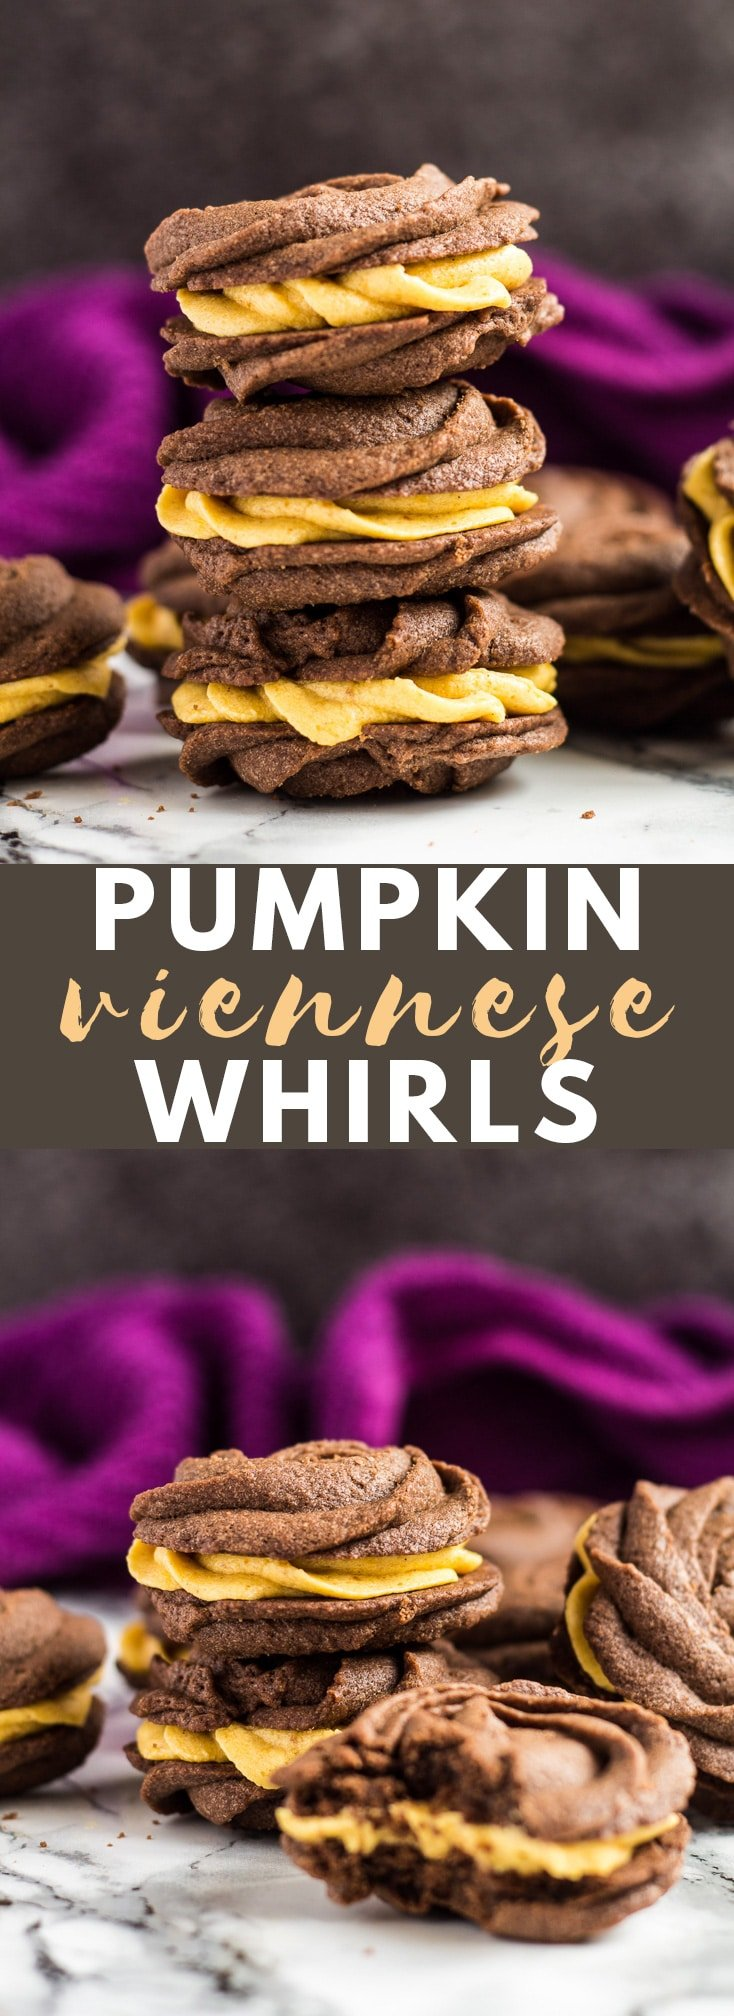 Chocolate Pumpkin Viennese Whirls - Deliciously buttery, melt-in-your-mouth chocolate biscuits filled with a perfectly spiced pumpkin buttercream! #chocolate #pumpkin #cookies #viennesewhirls